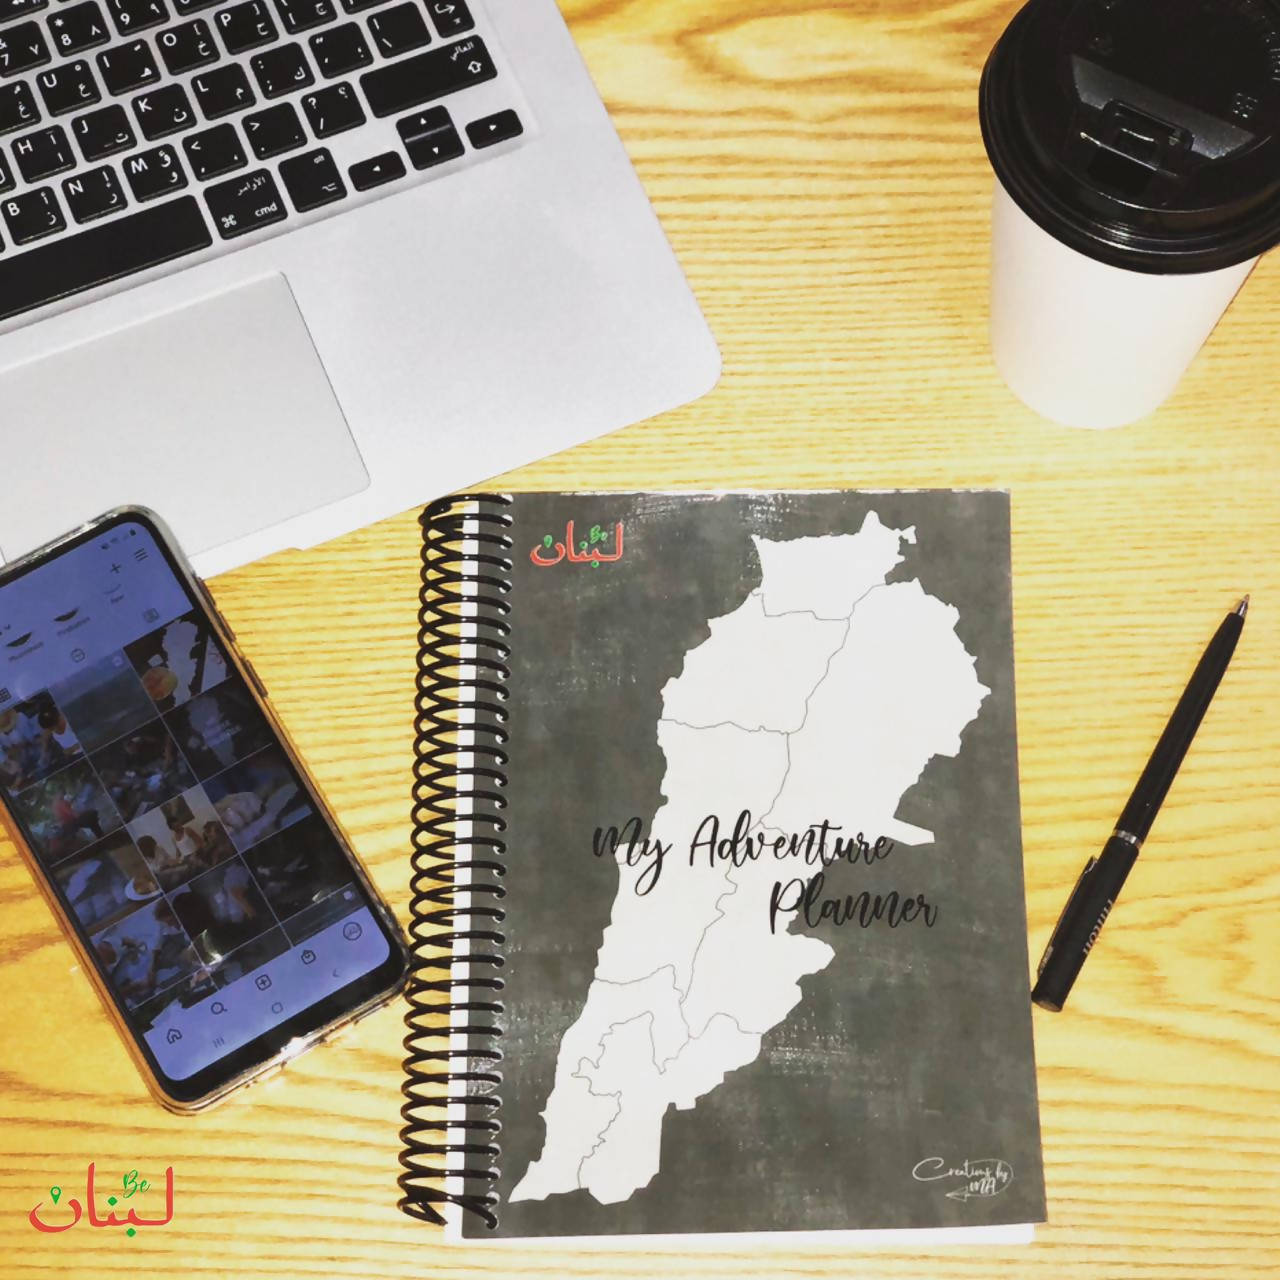 Be لبنان- Be Lebnen My Adventure Planner